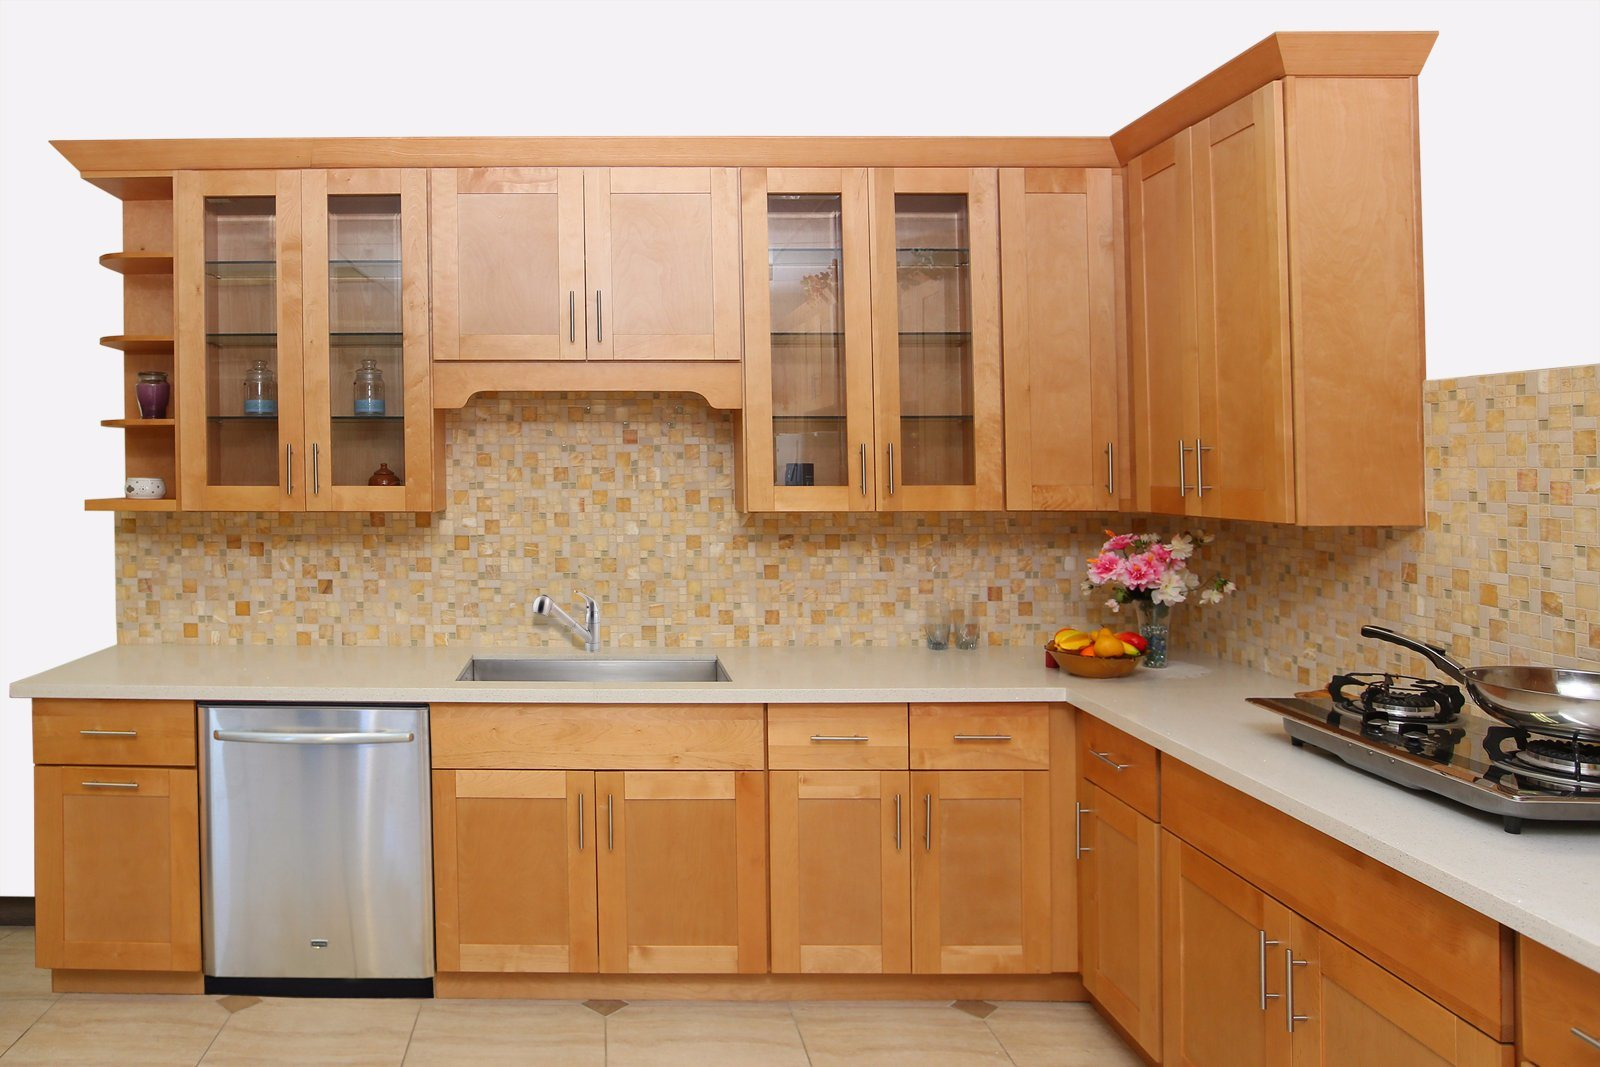 China Wooden America Standard Natural Maple Shaker Kitchen Cabinets China Kitchen Cabinets Kitchen Cabinet